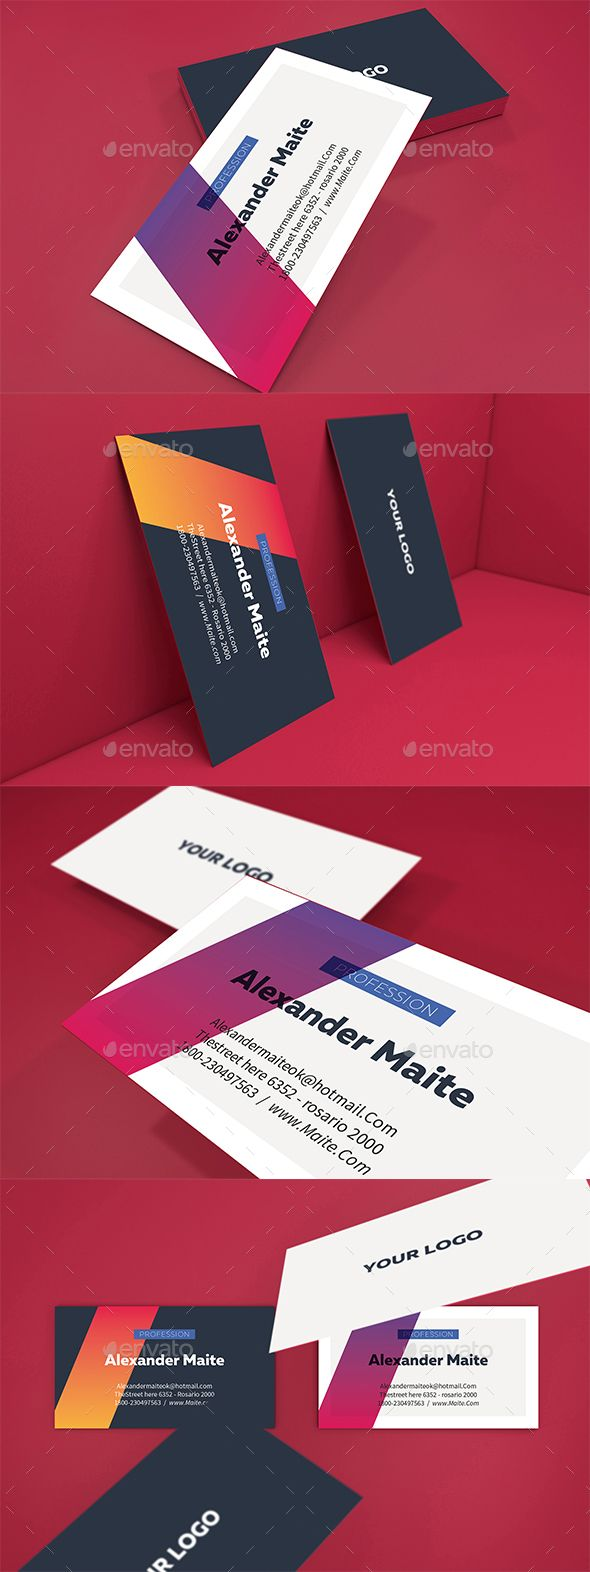 1033 best Creative Business Cards images on Pinterest | Business ...